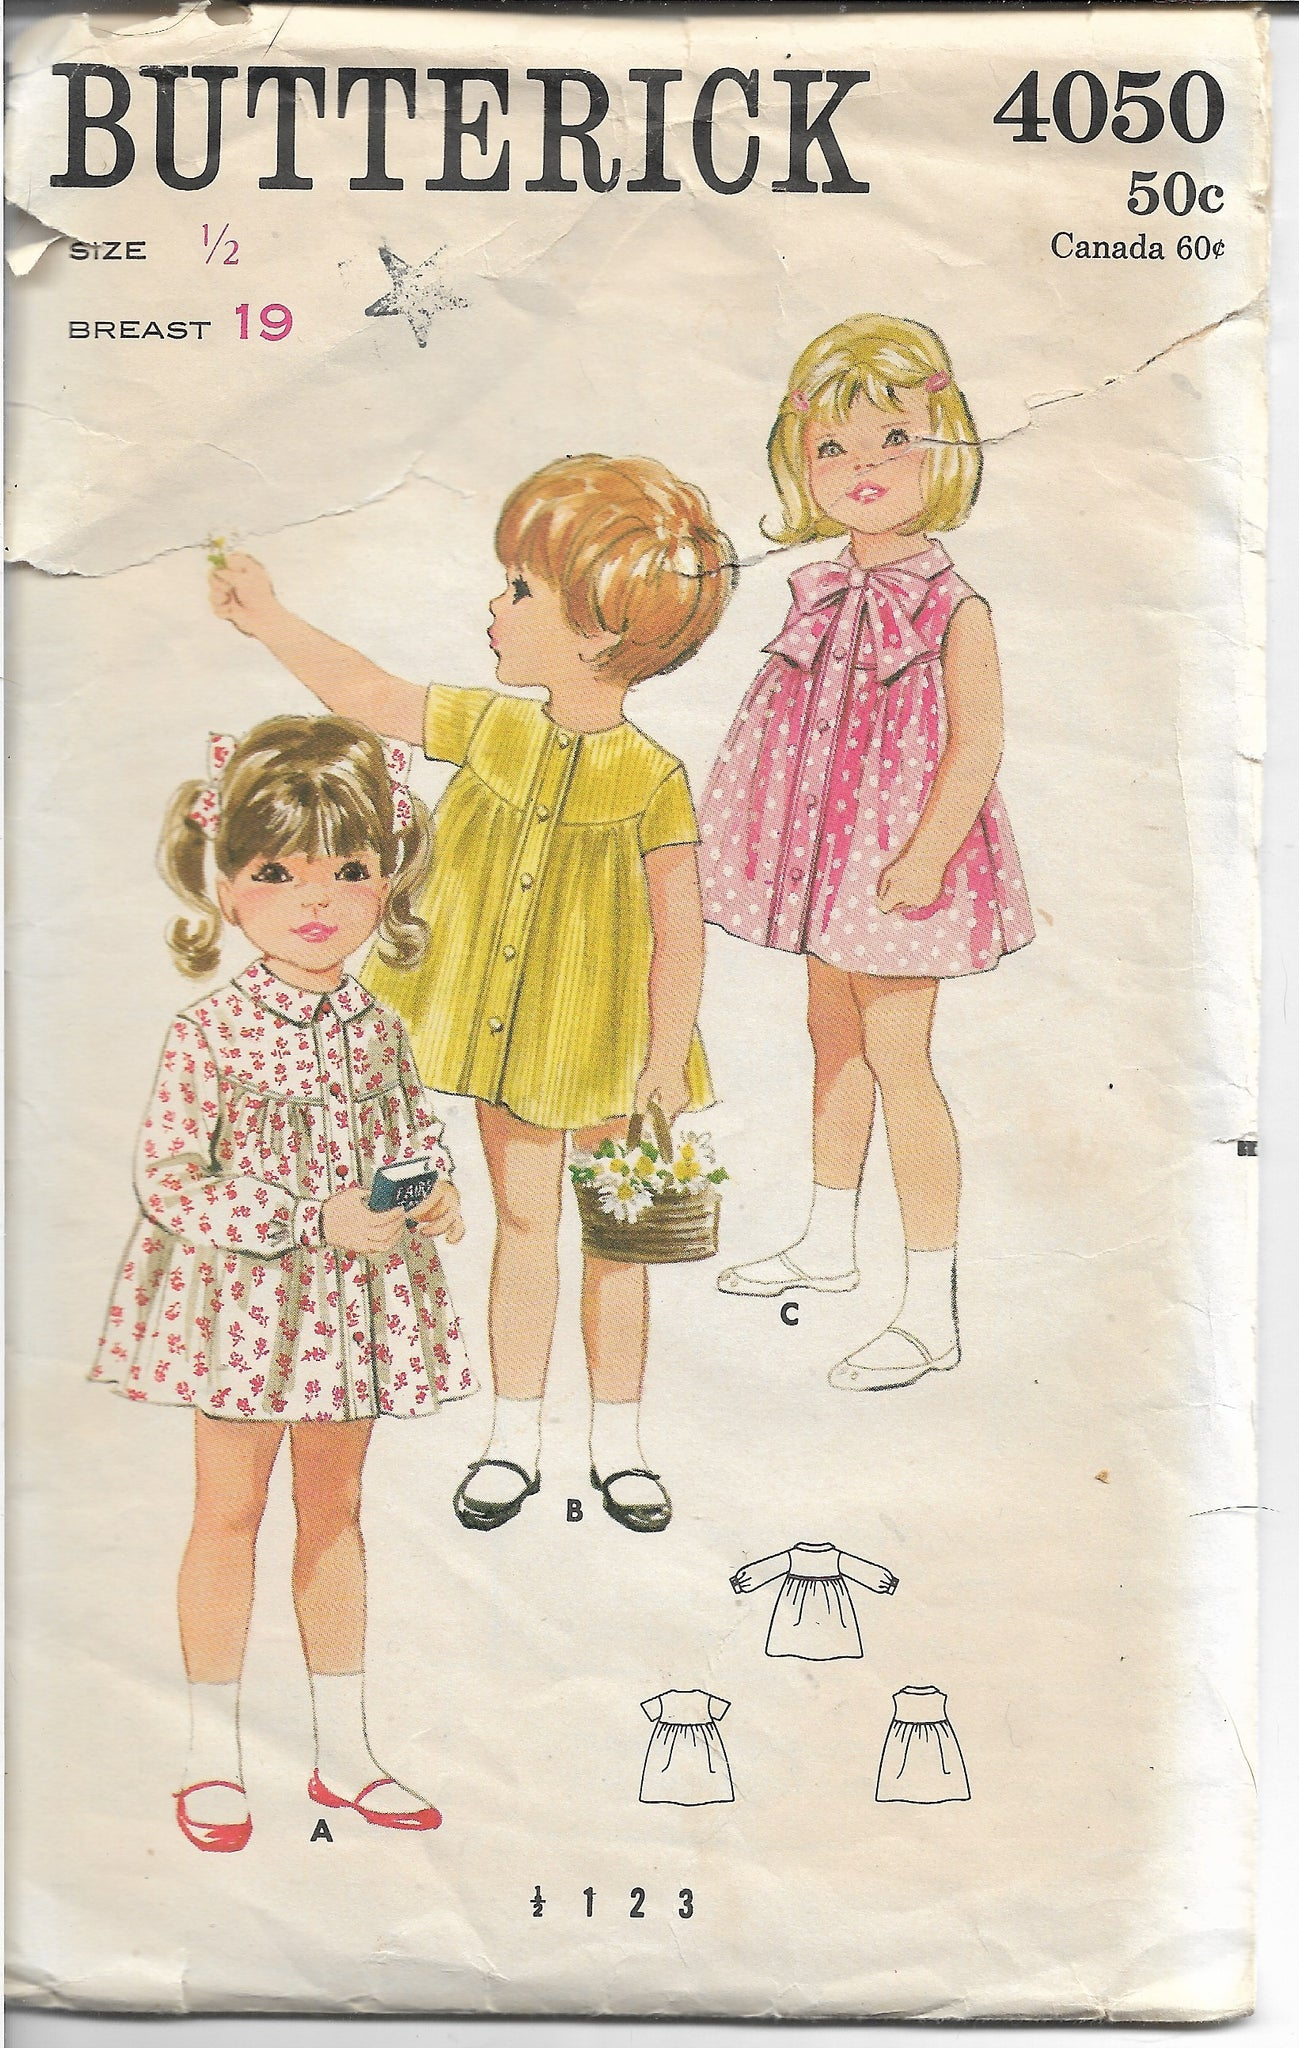 Butterick 4050 Toddlers' Smock Dress Vintage Sewing Pattern 1960s - VintageStitching - Vintage Sewing Patterns